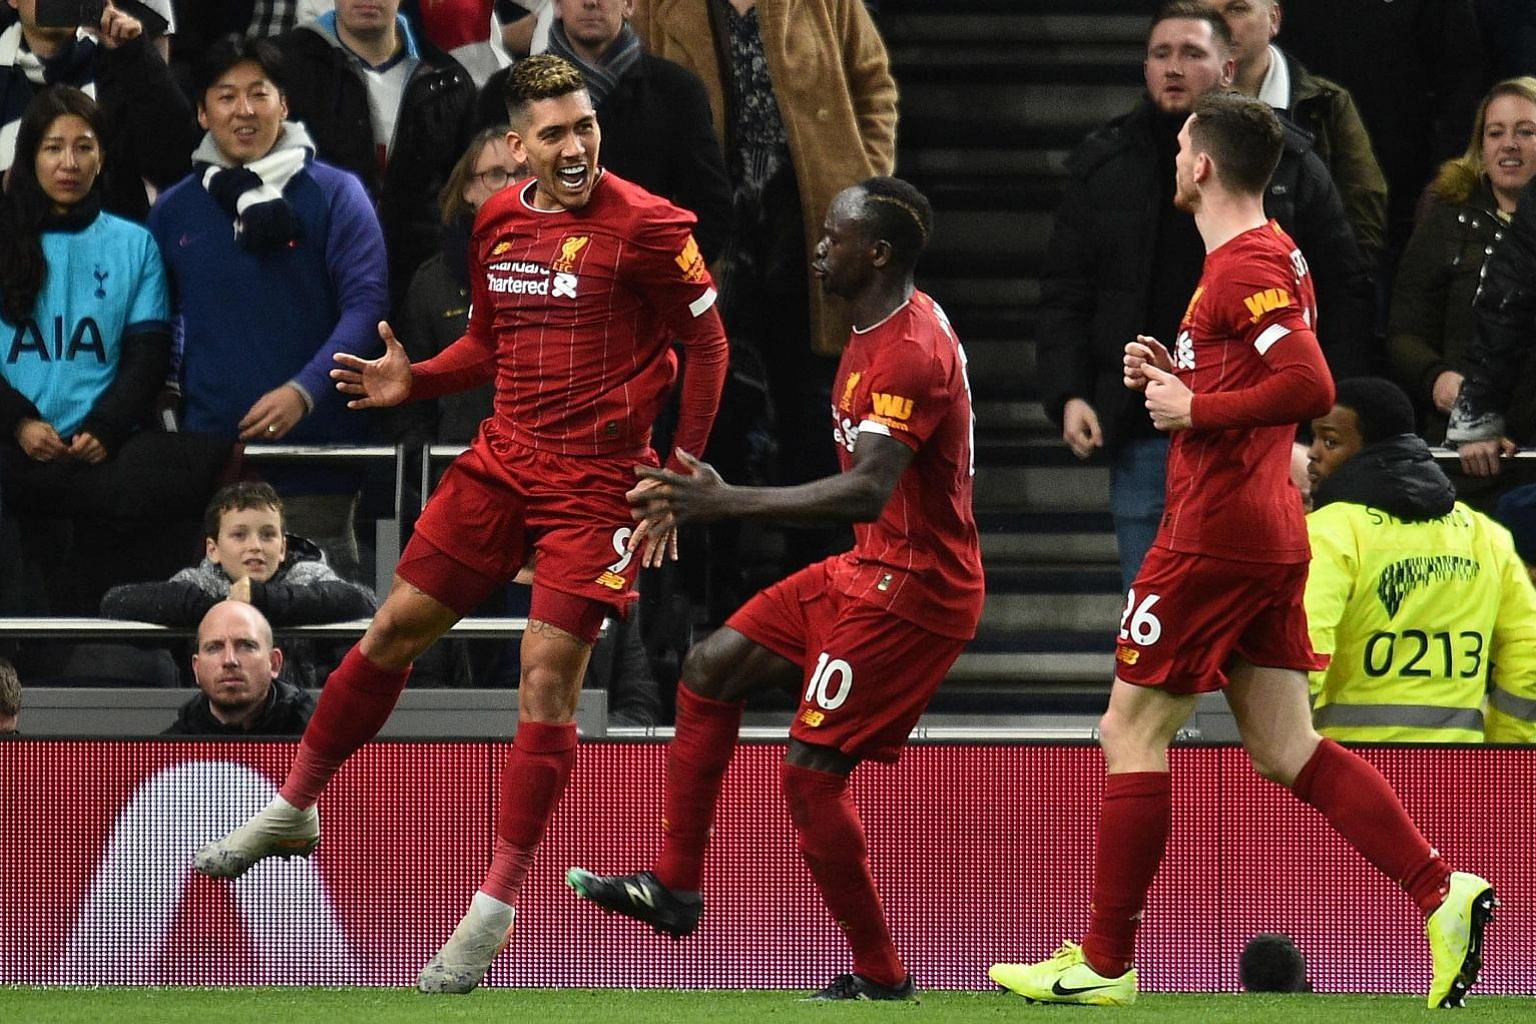 Roberto Firmino celebrating after scoring Liverpool's first-half winner against Tottenham on Saturday. It was his seventh league goal this season, all coming in away games.